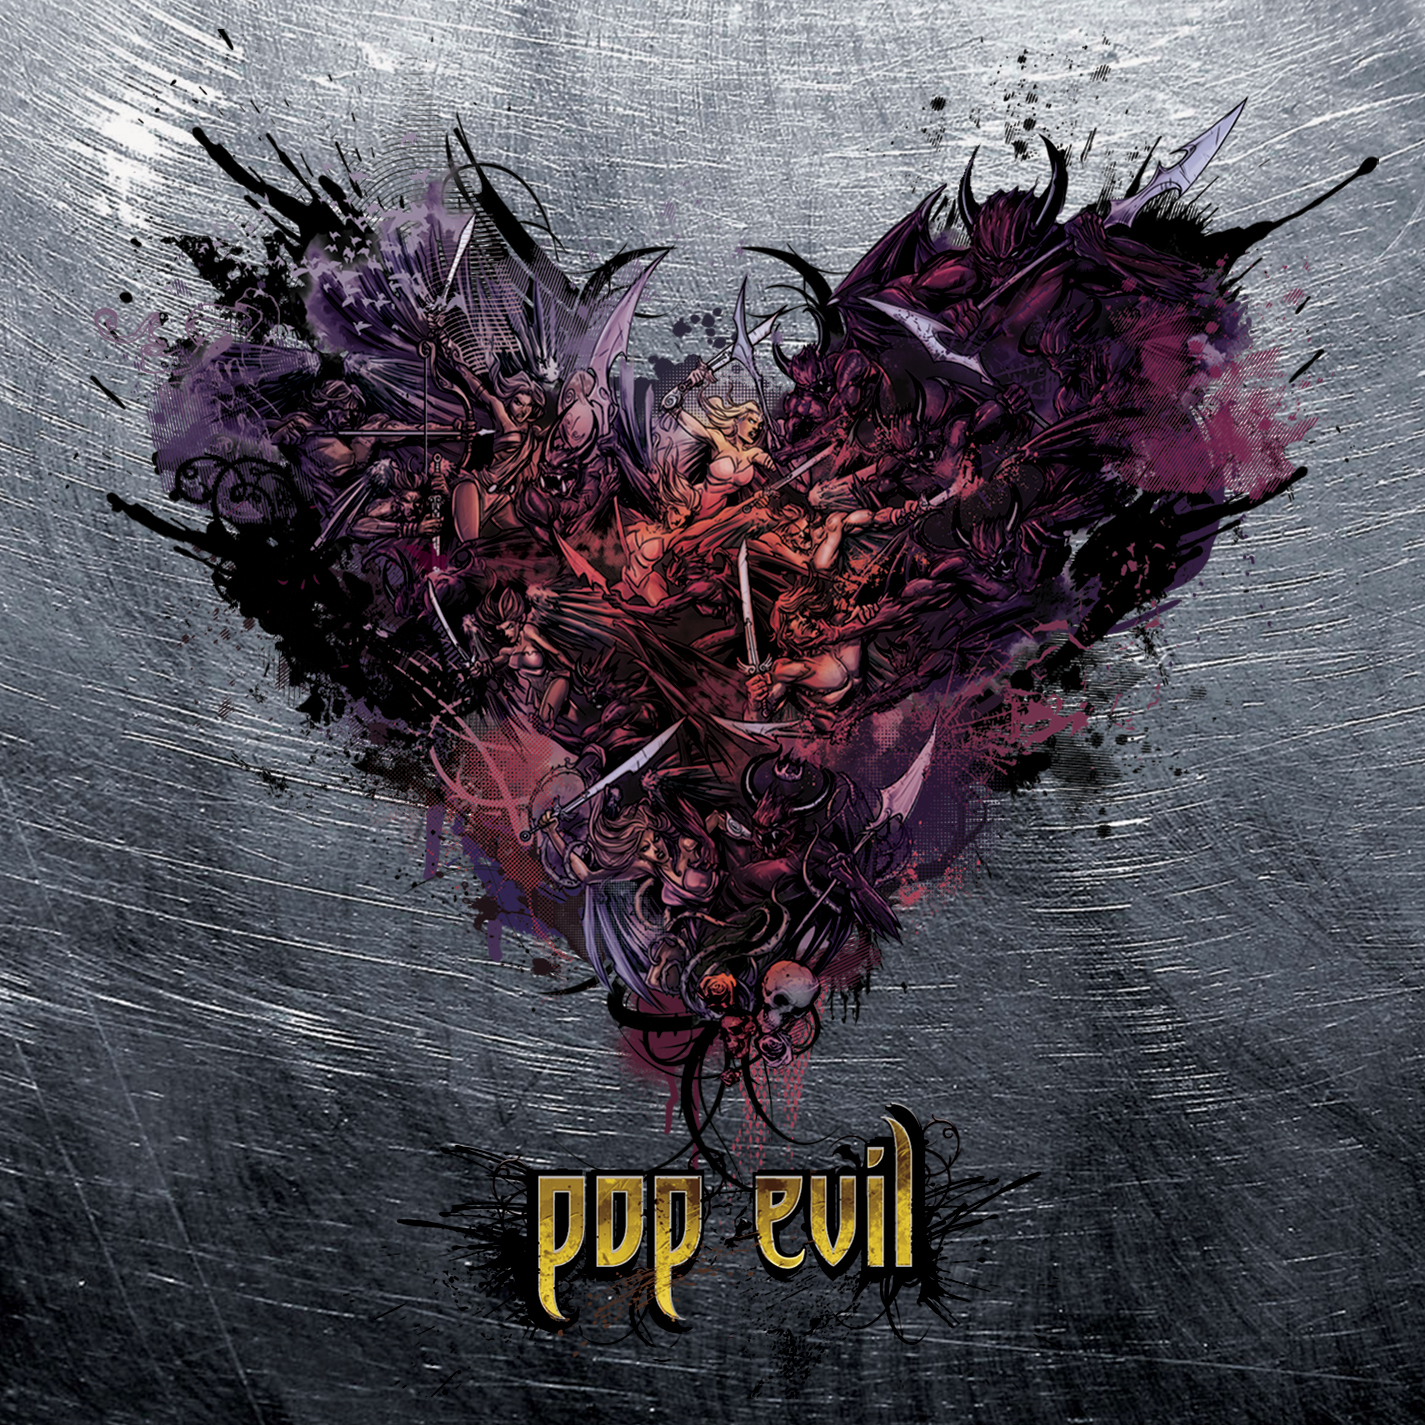 INTERVIEW WITH HAYLEY & LEIGH OF POP EVIL